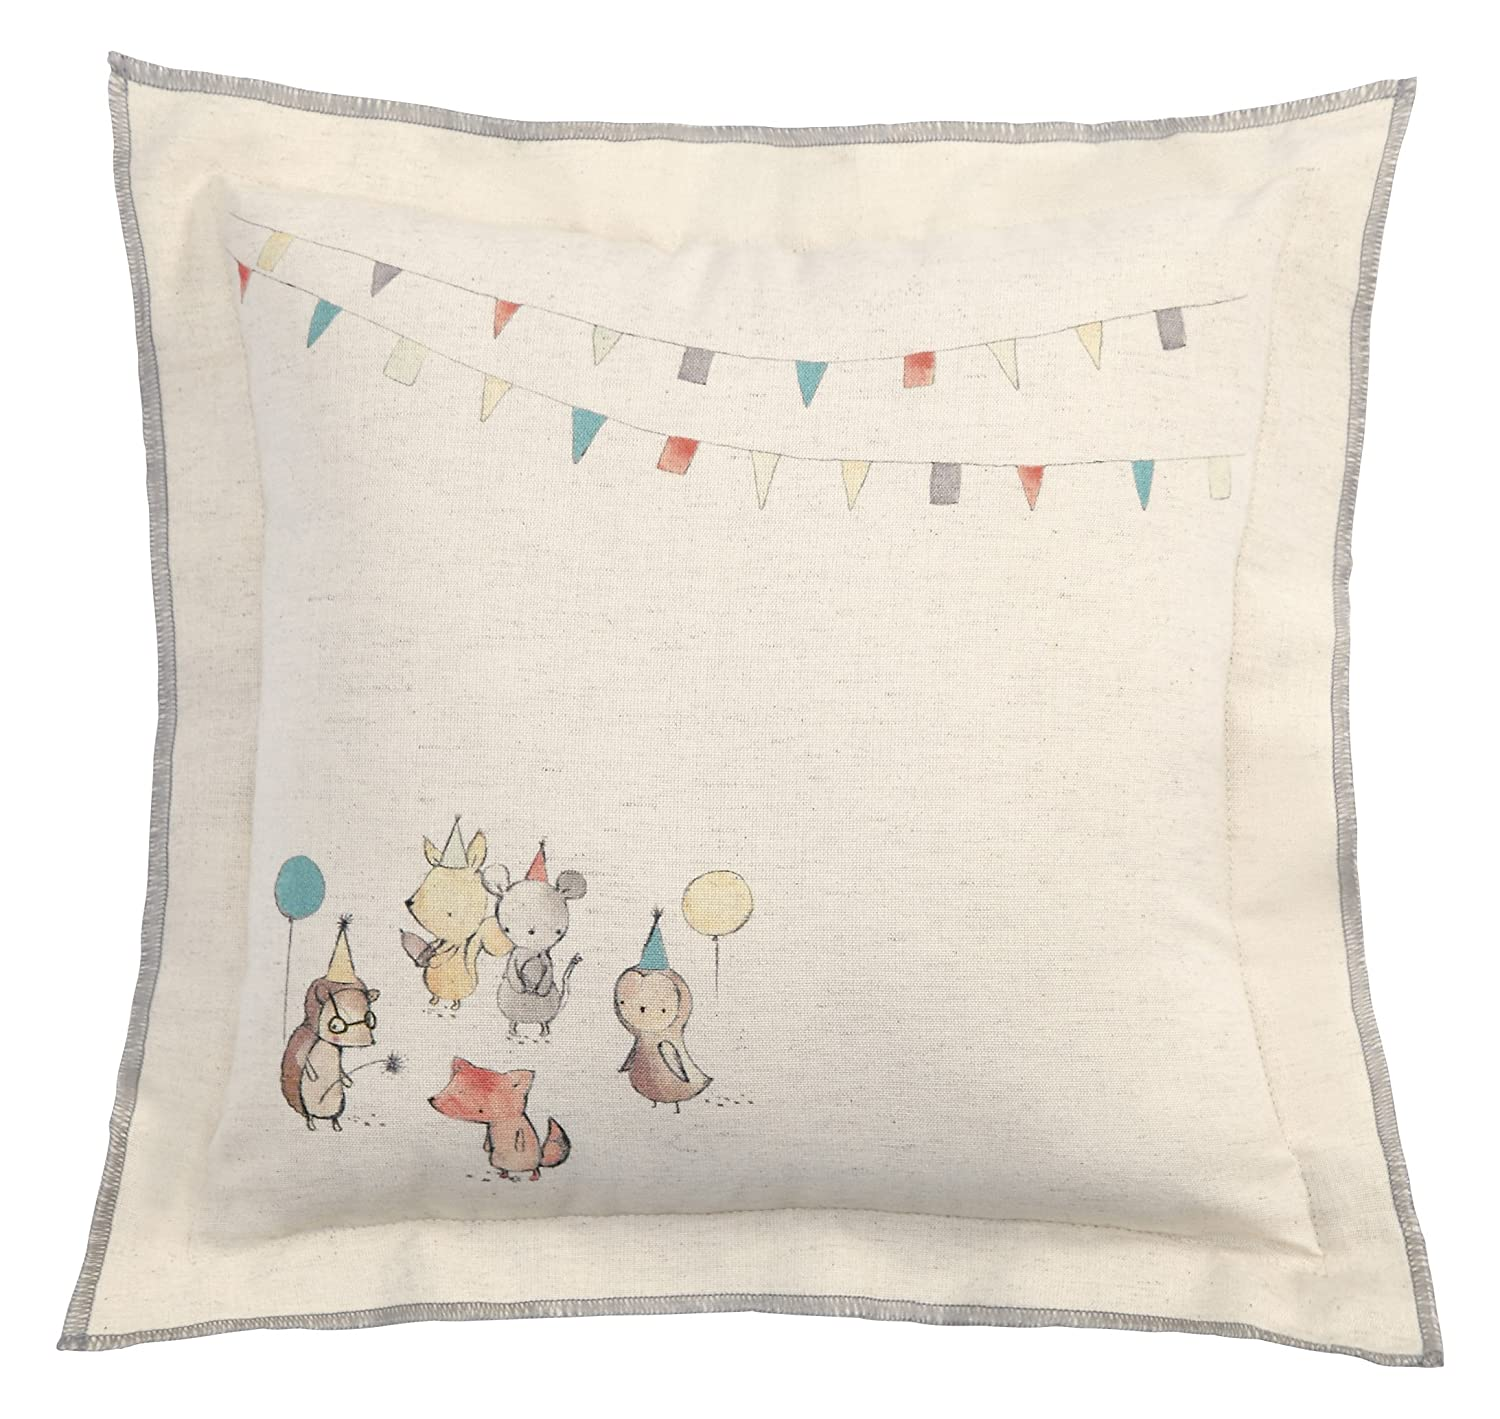 Mamas & Papas Nestling Nursery Bedding Cushion, Nursery Bedding, Nursery Décor, Children's Bedroom, Novelty Cushion Children's Bedroom 753256800